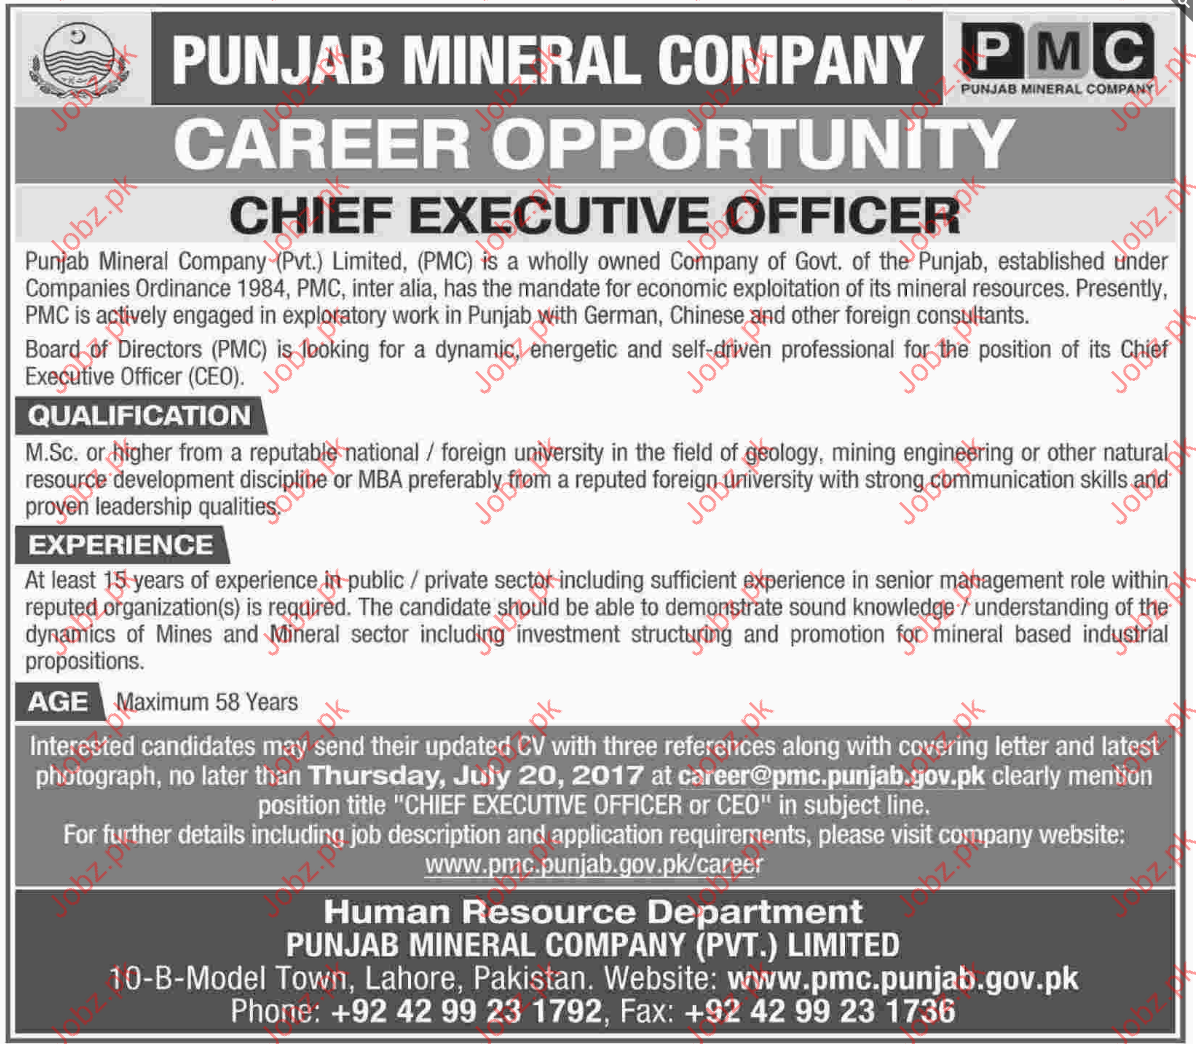 Chief Executive Officer Jobs In Punjab Mineral Company  Chief Executive Officer Job Description